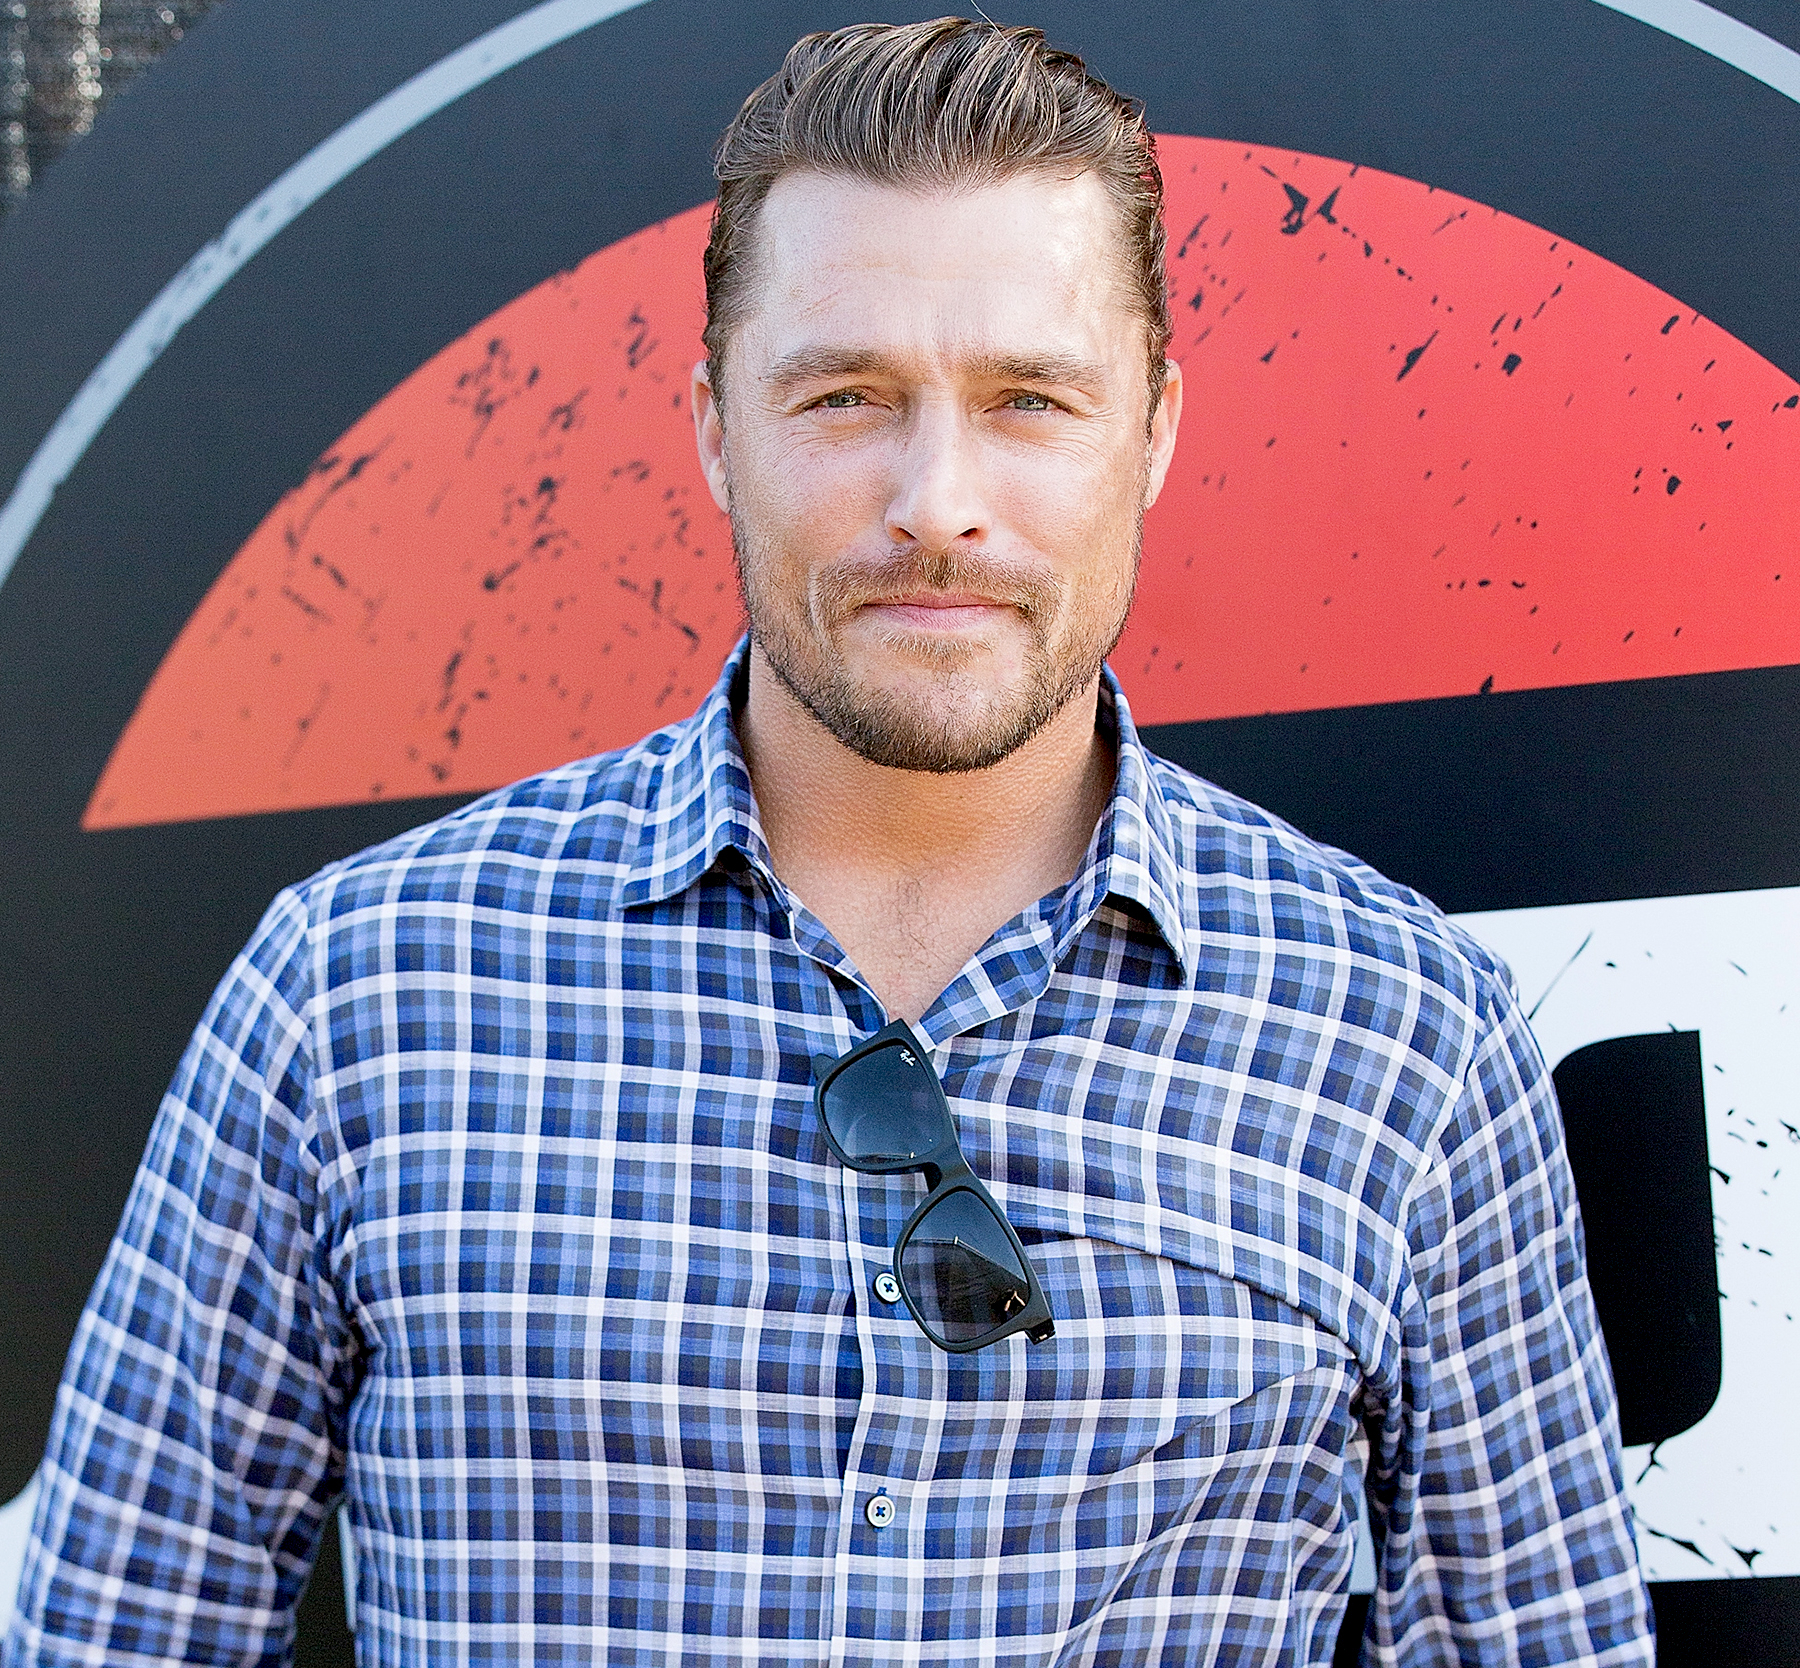 Chris Soules attends the Alt 98.7 Summer Camp at Santa Monica Pier in Santa Monica, California, on August 5, 2016.